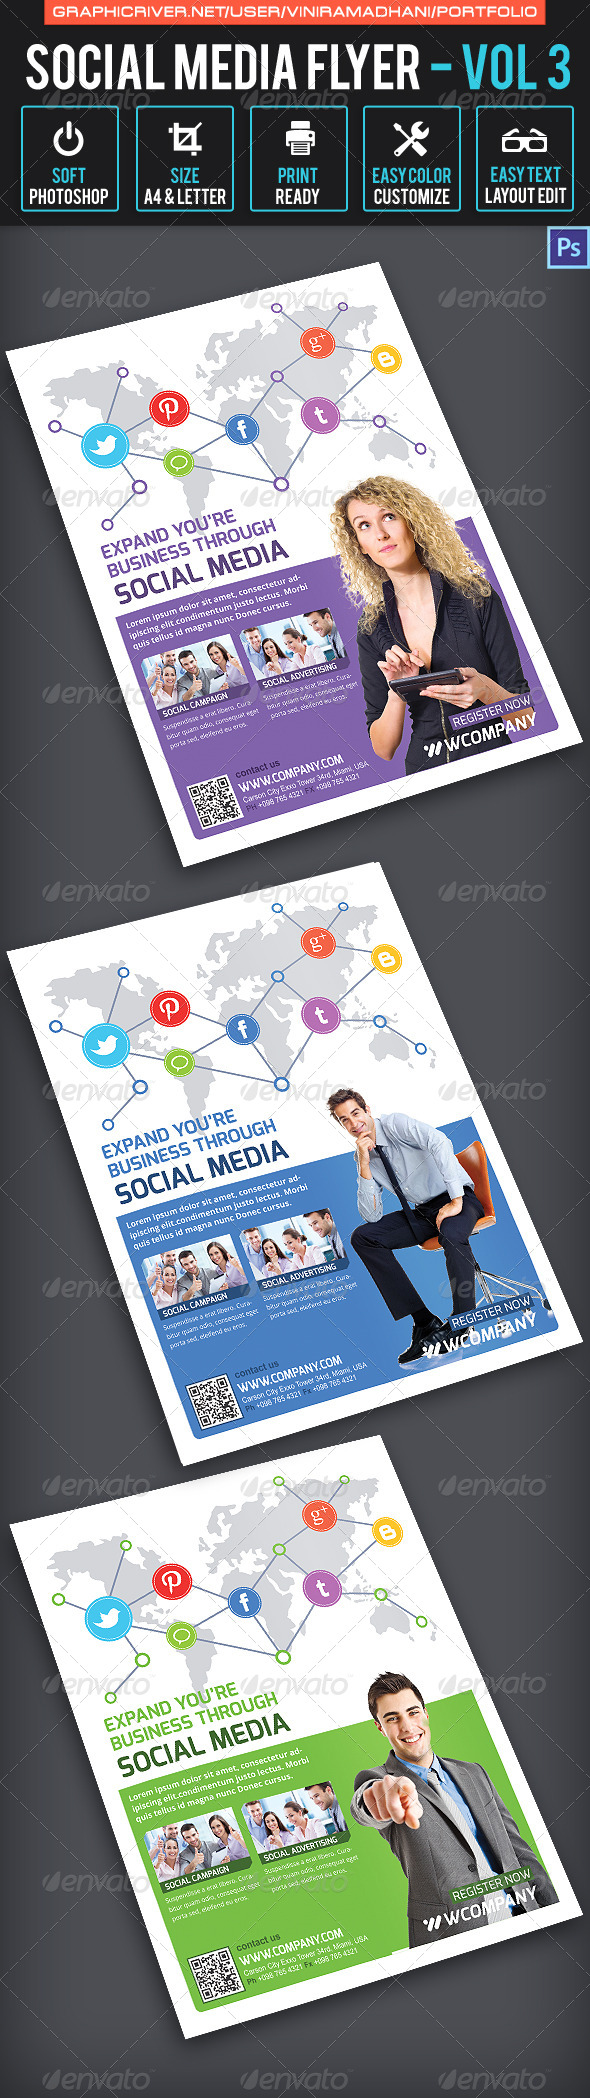 GraphicRiver Social Media Flyer Volume 3 6542427